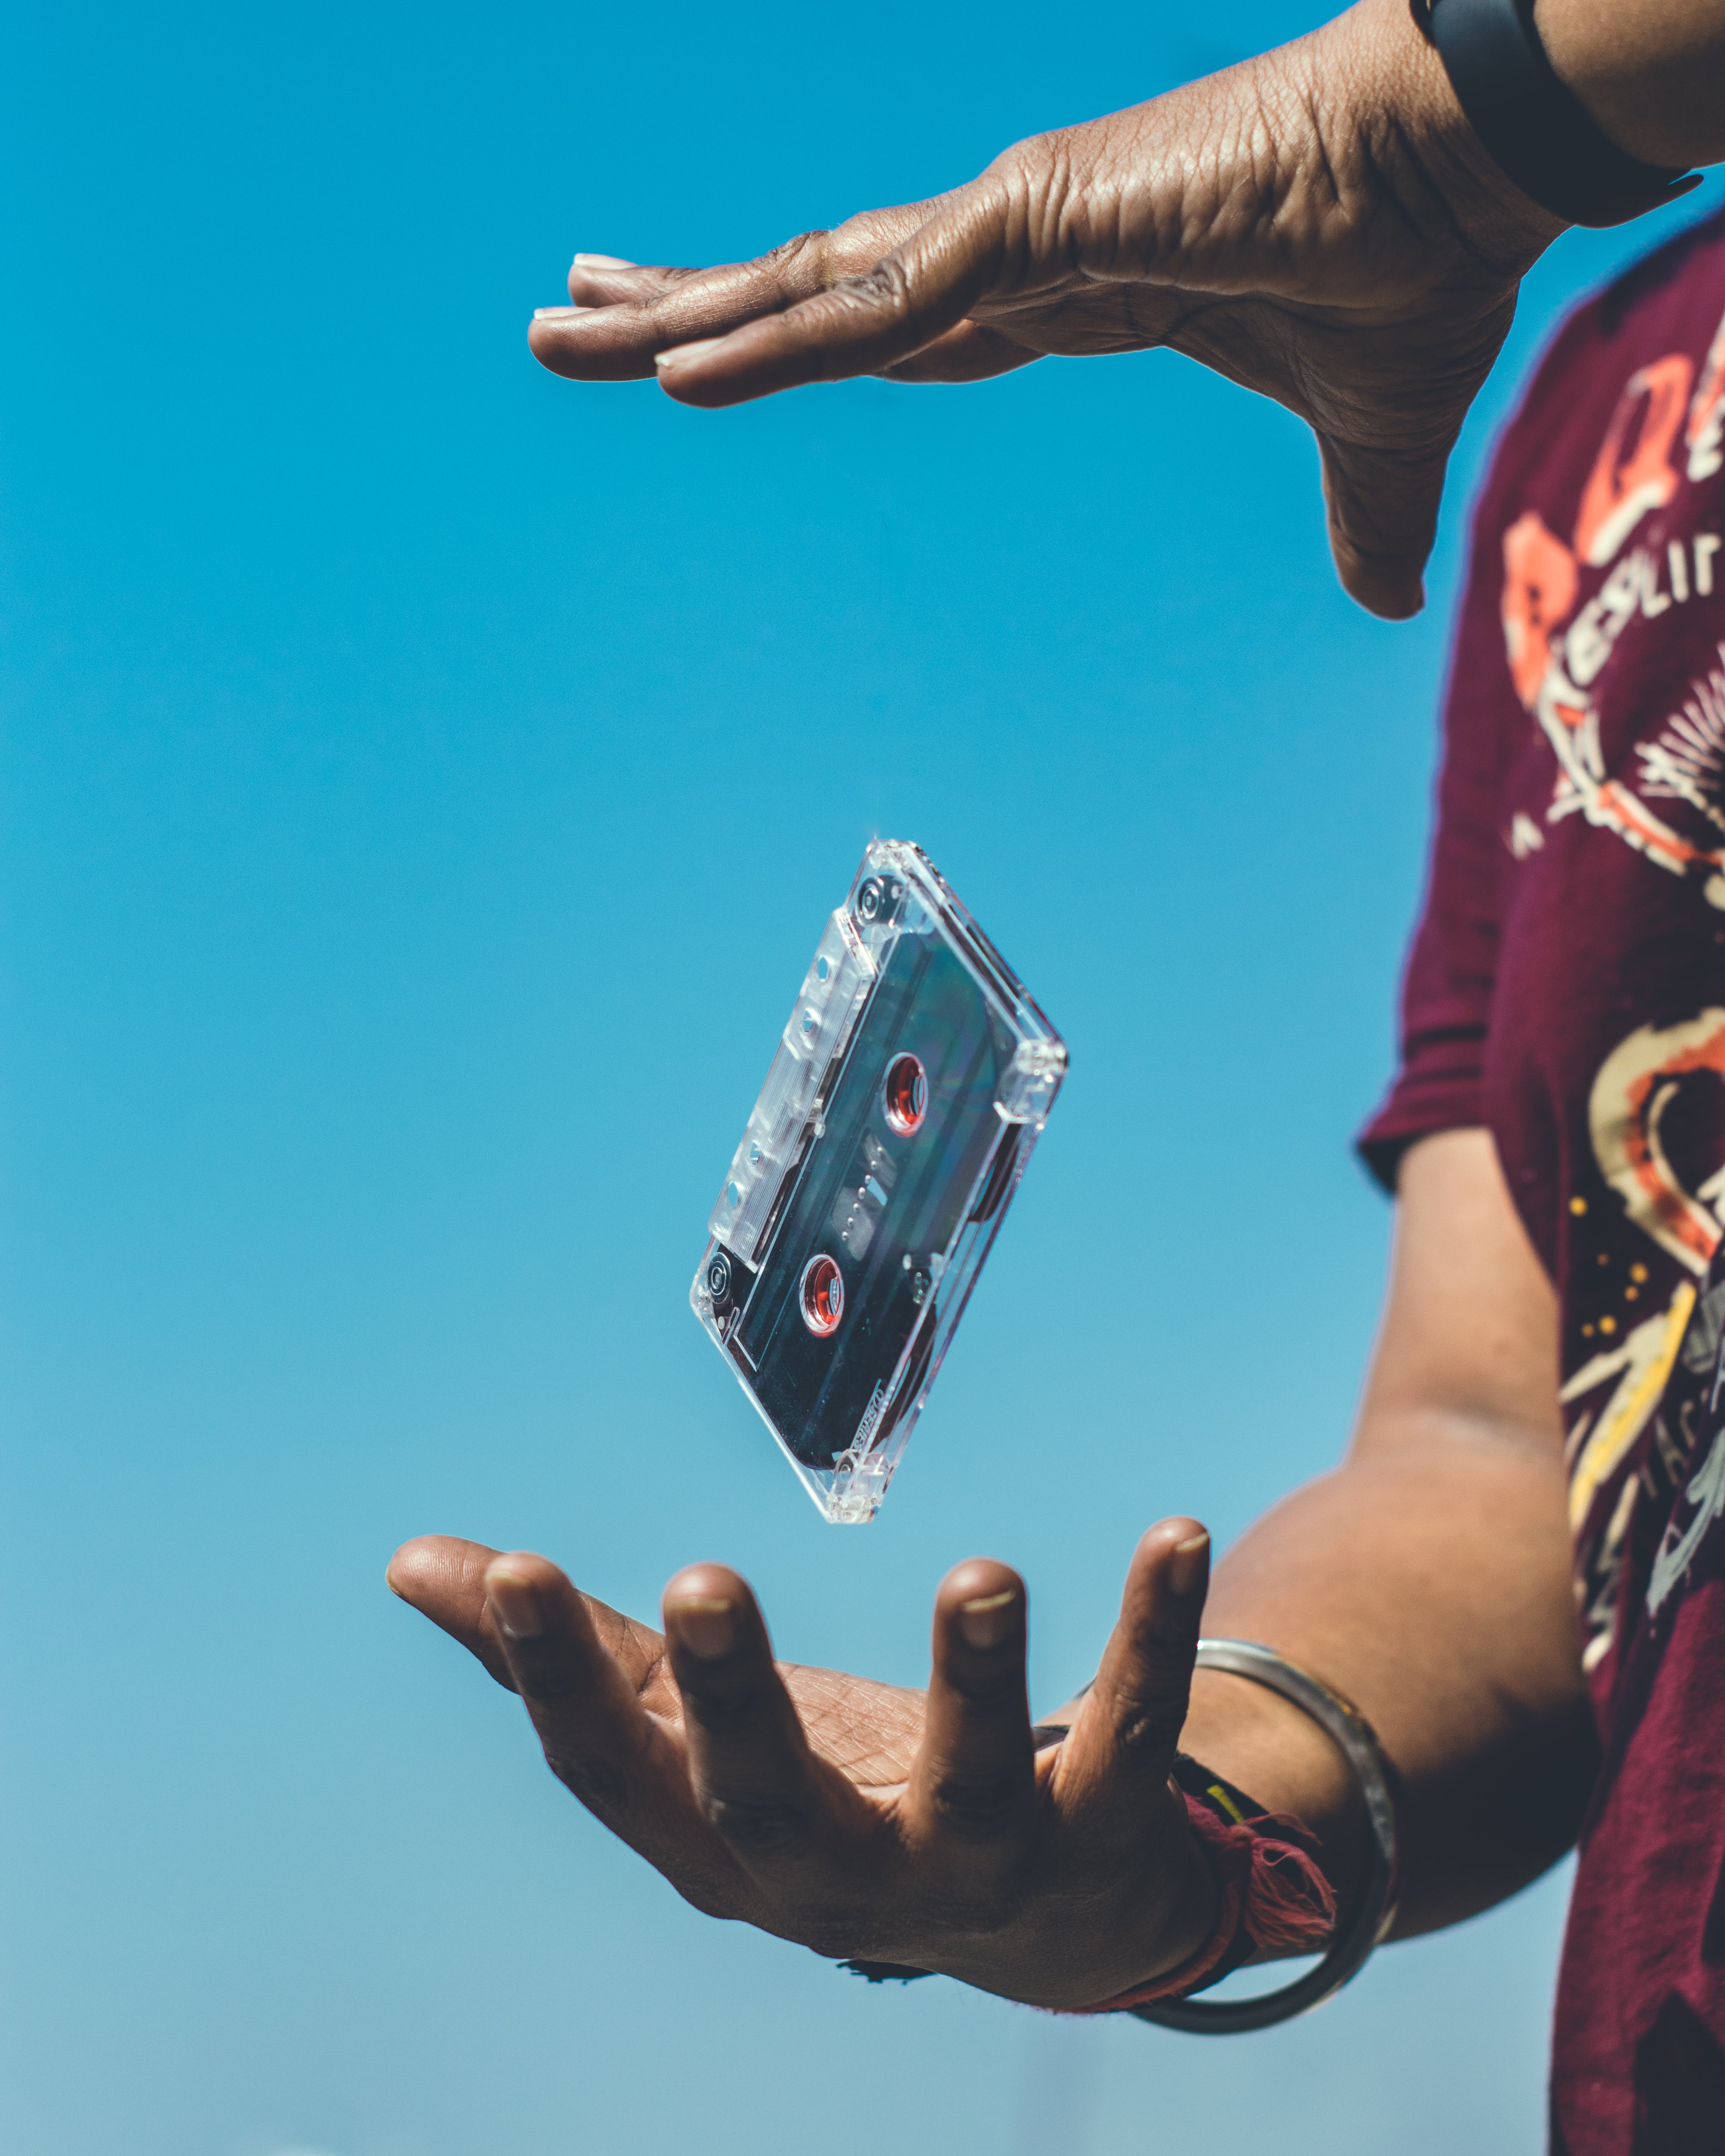 Cassette Tape in Between of Person Hand